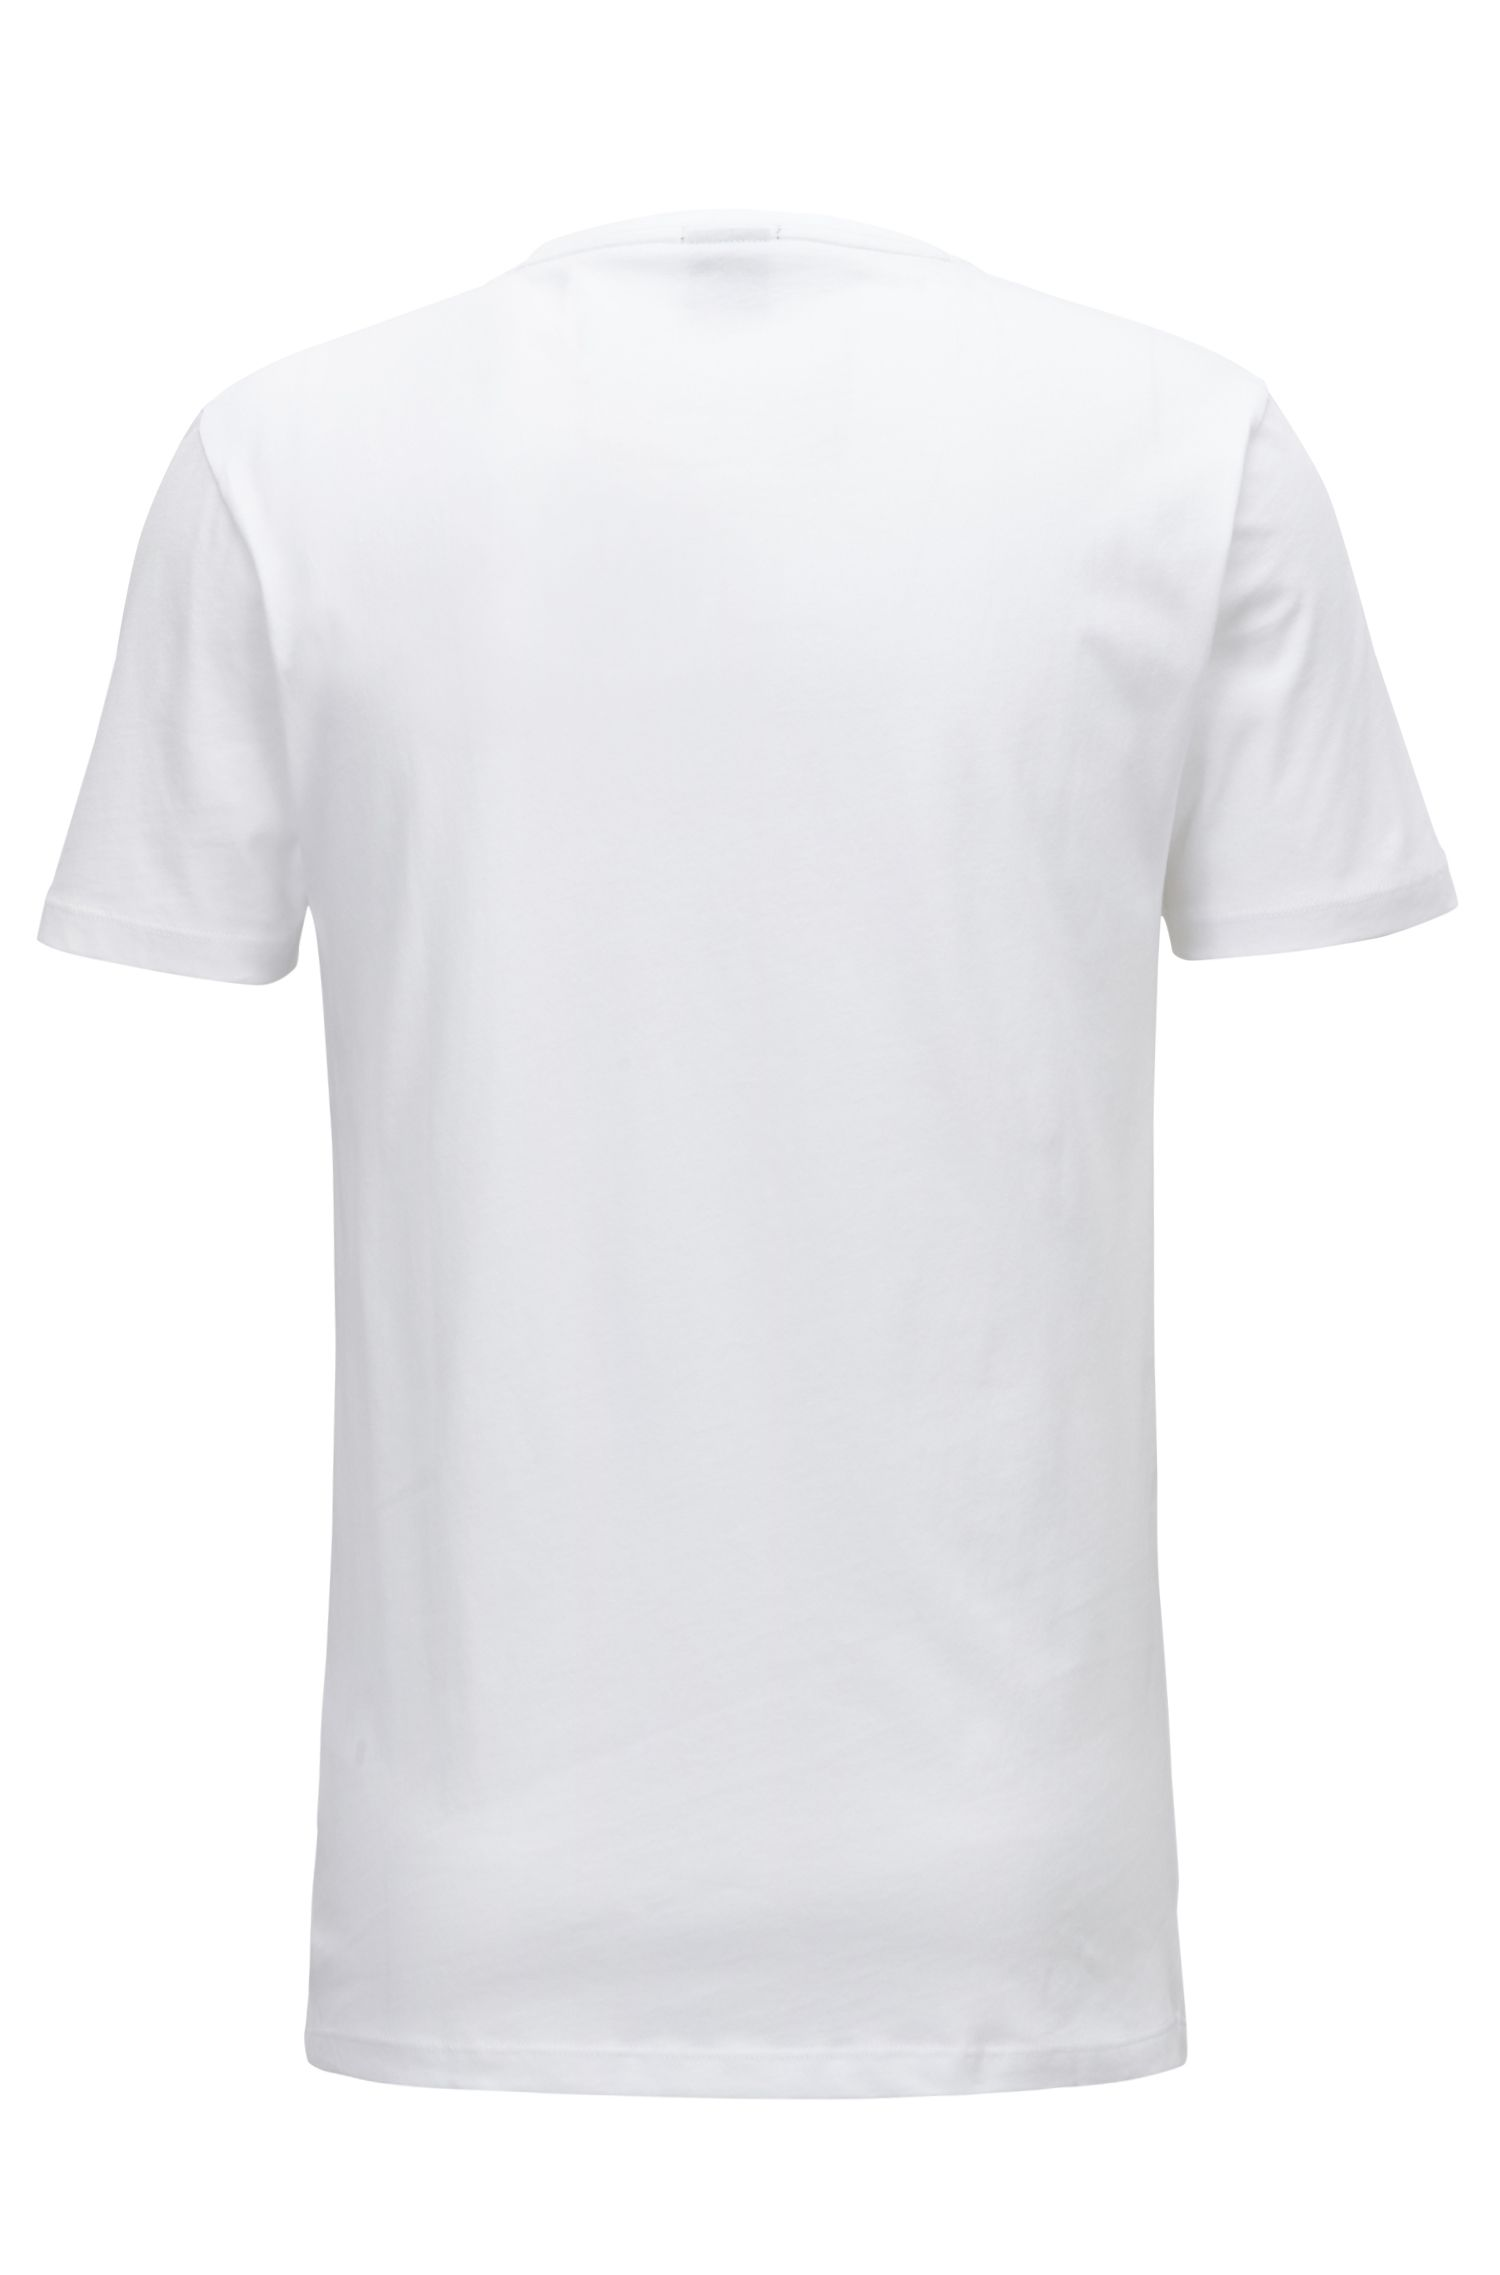 T-Shirt aus Single Jersey mit Print